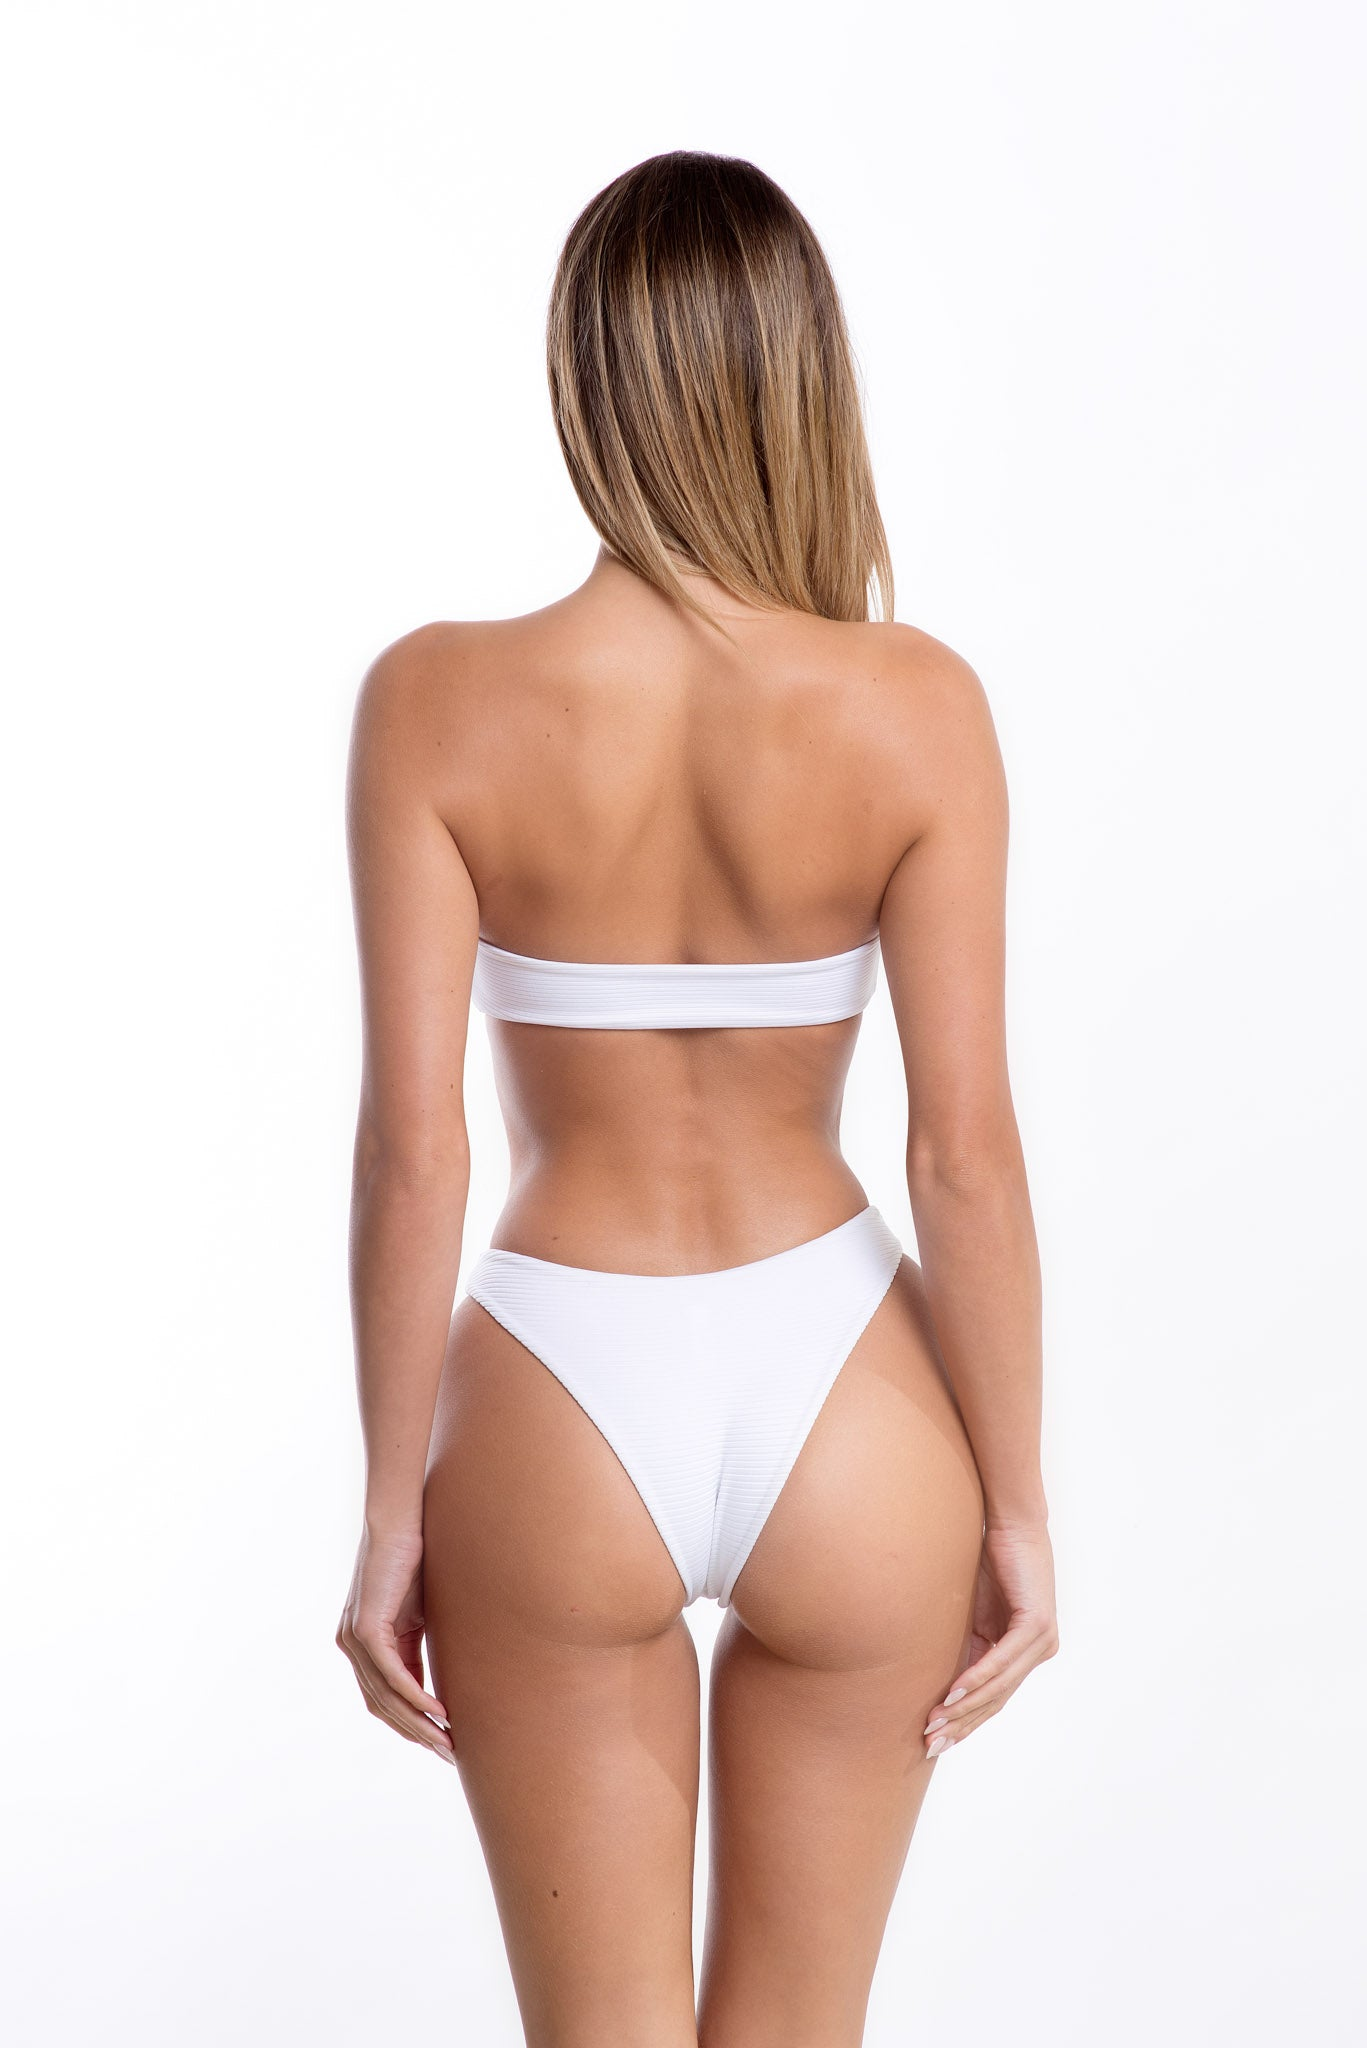 Zuri Top White Rib